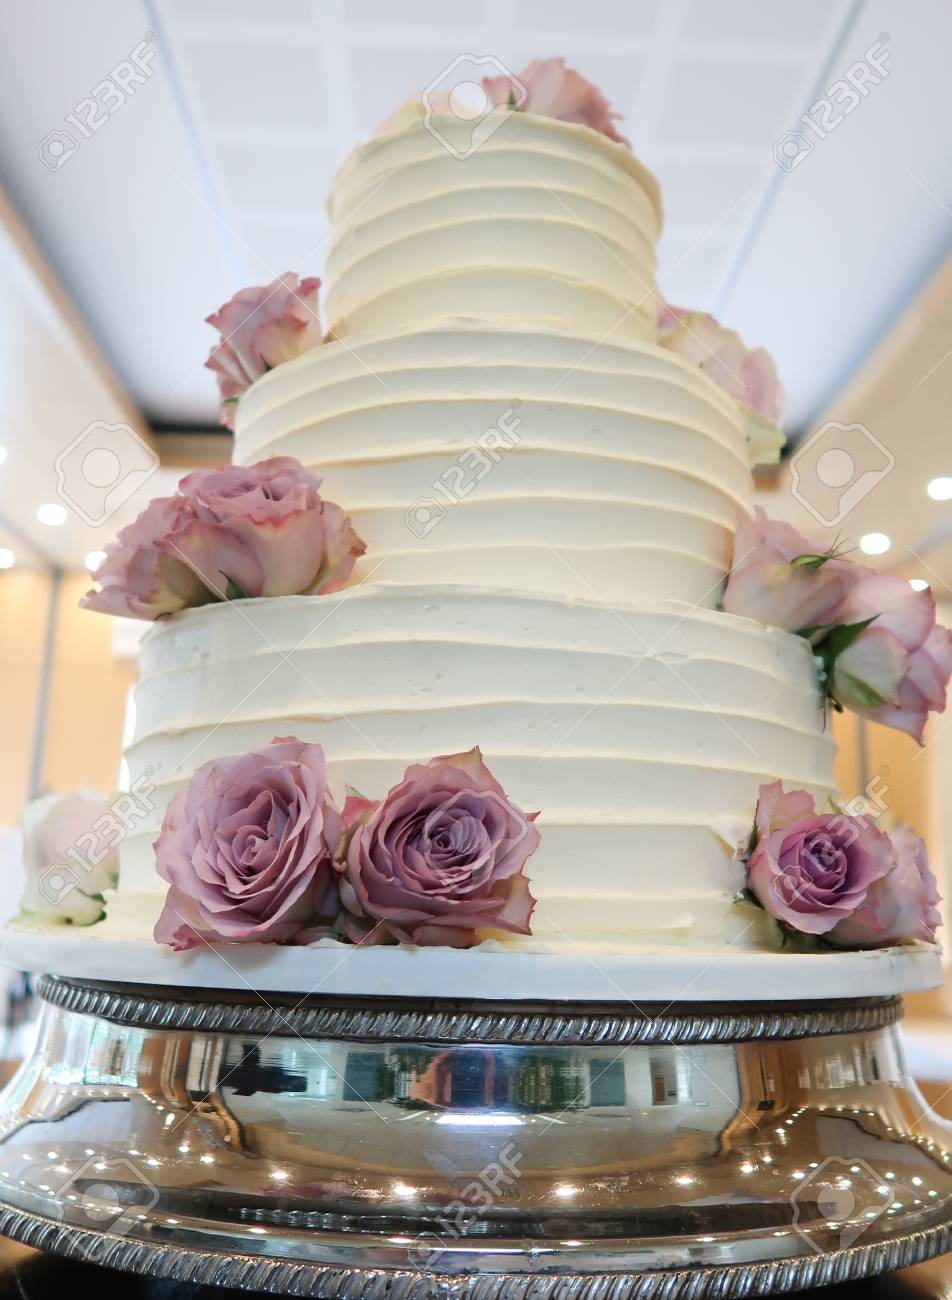 Amazing white wedding cake with pink flowers stock photo picture amazing white wedding cake with pink flowers stock photo 78894925 mightylinksfo